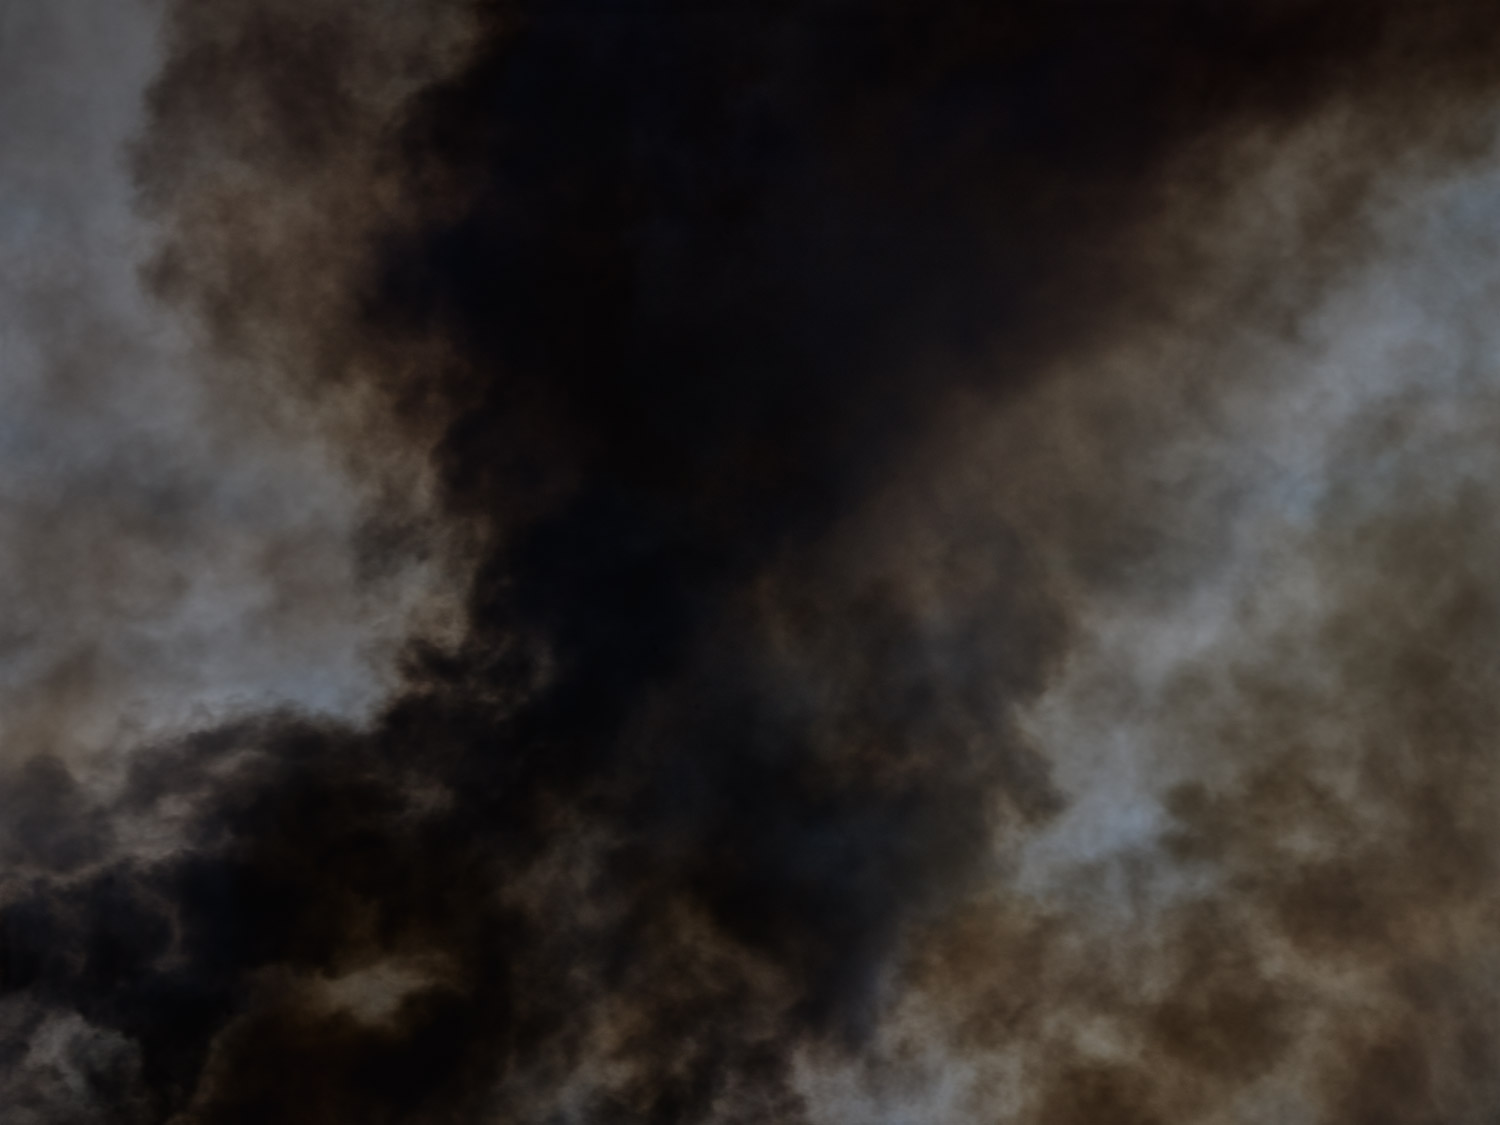 Black smoke fire in the air by photographer Kenneth Rimm